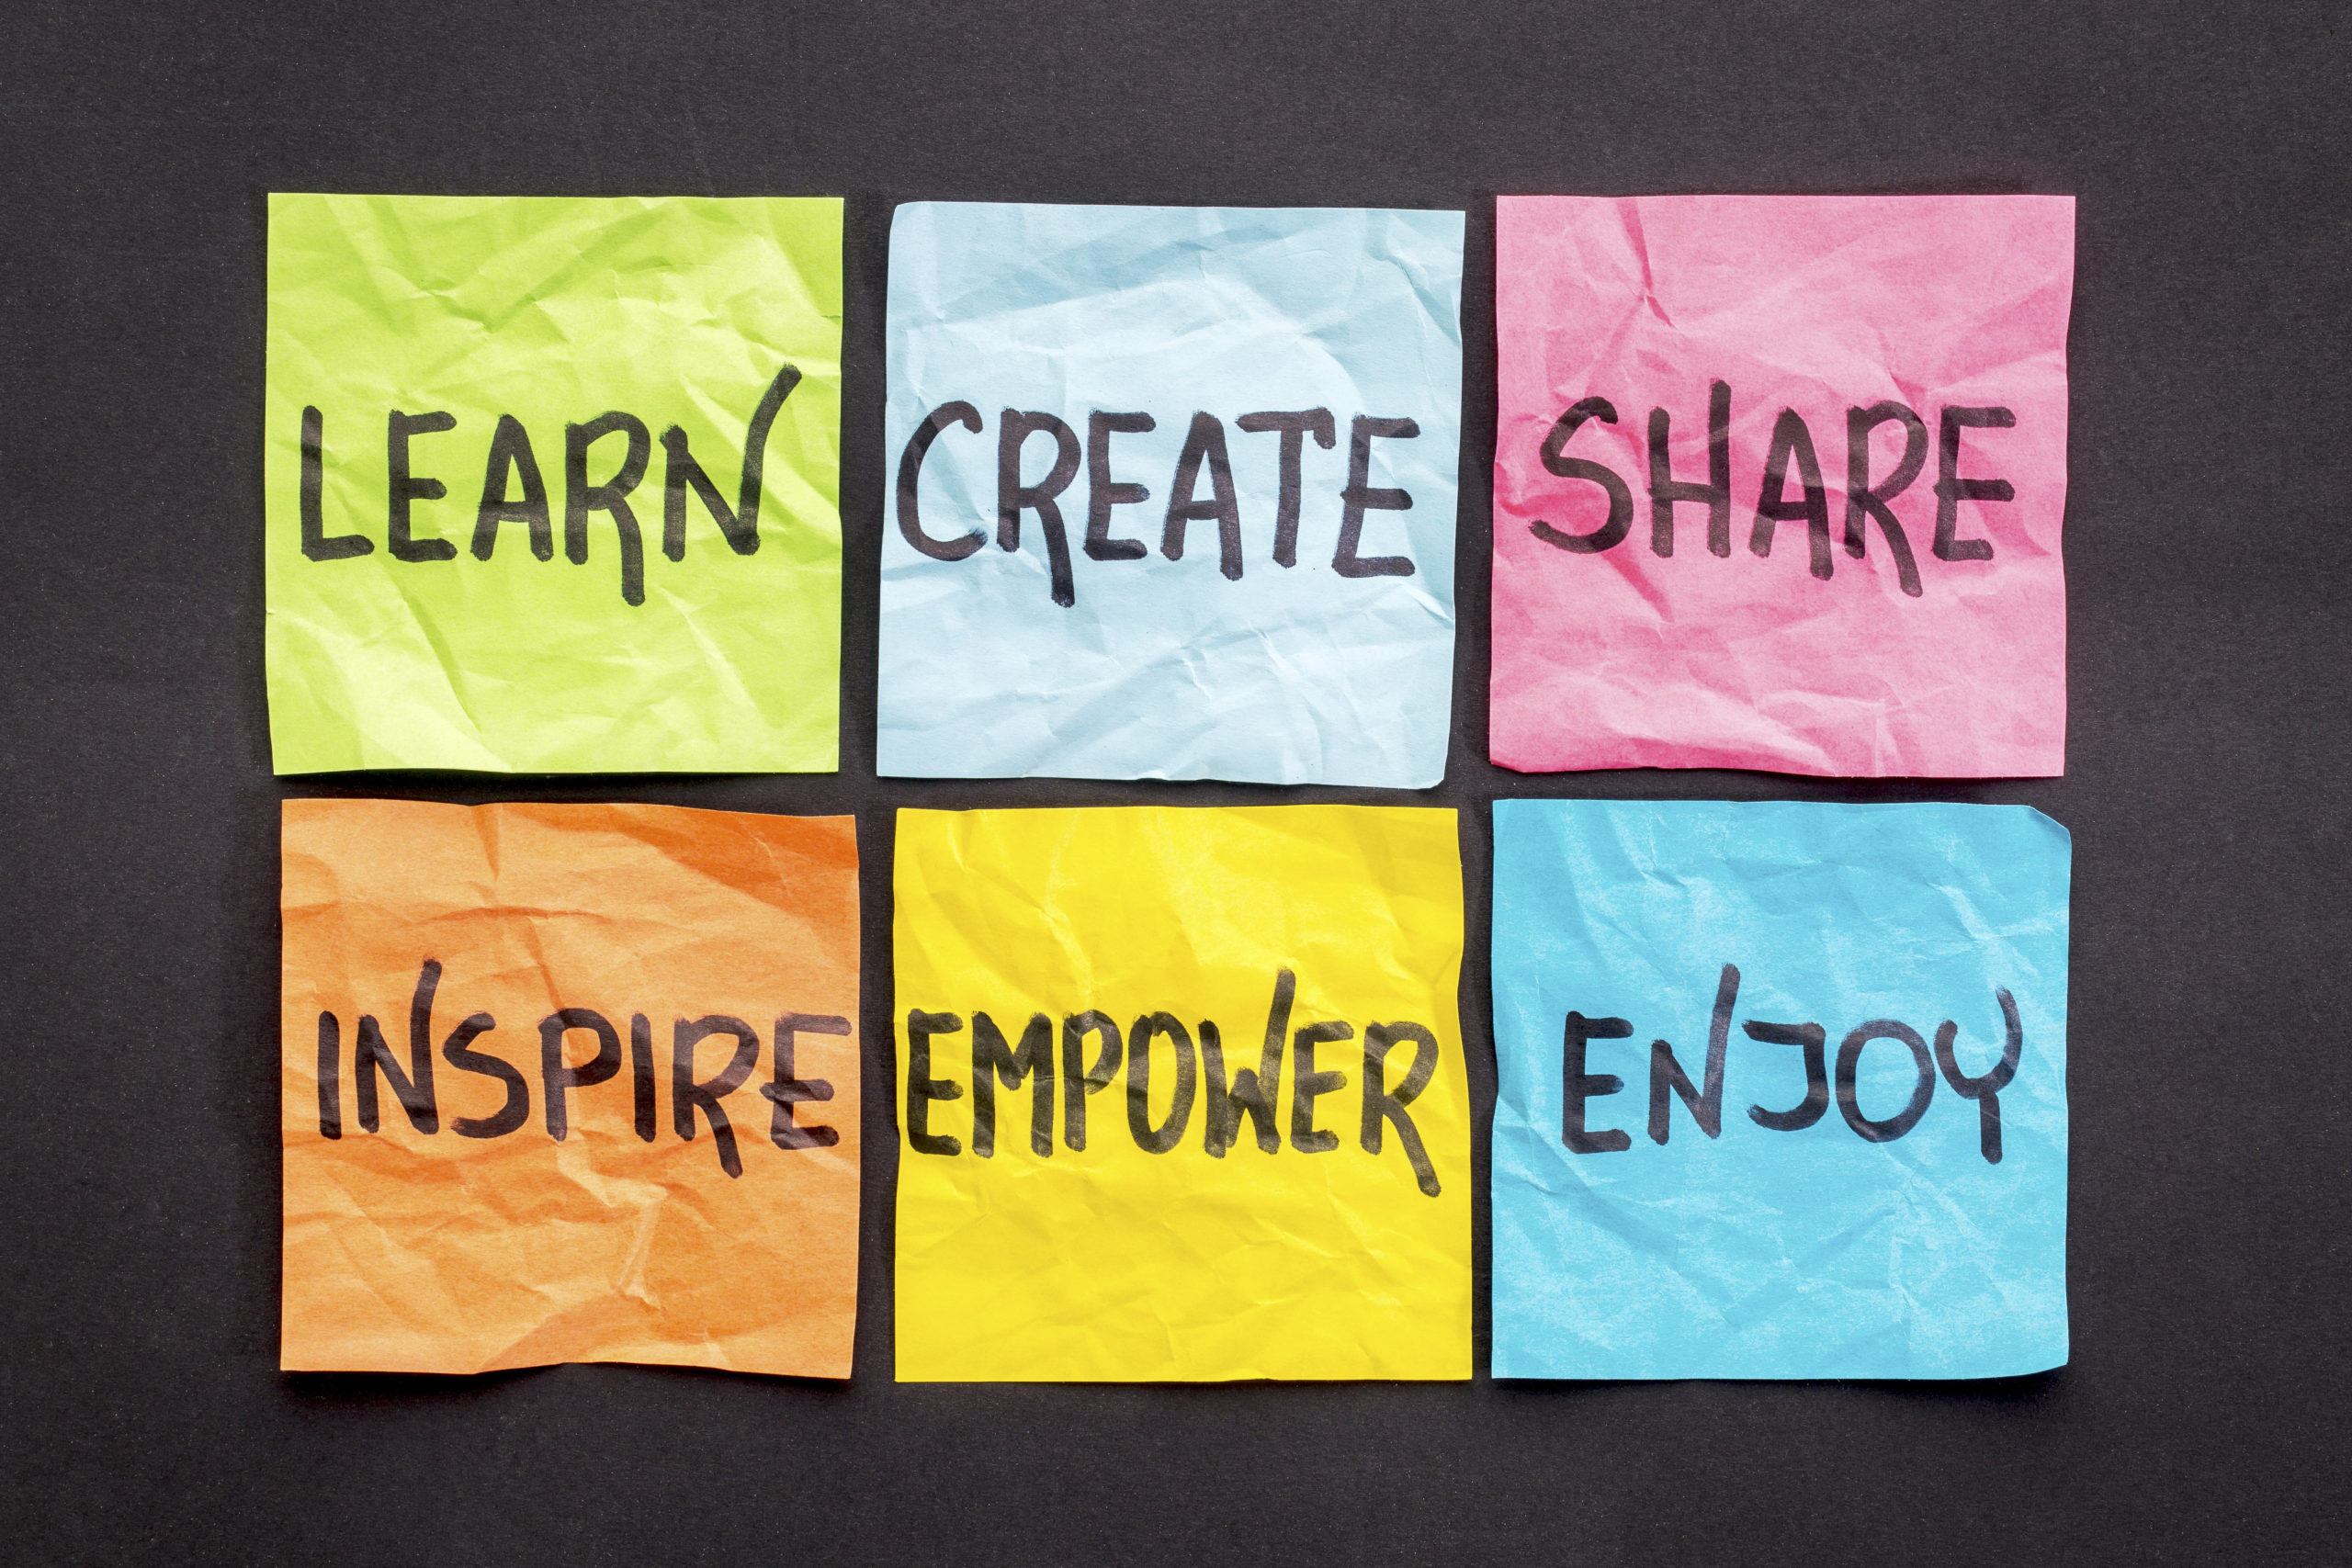 learn, create, share, inspire, empower and enjoy - set of sticky notes with inspirational words and smiley